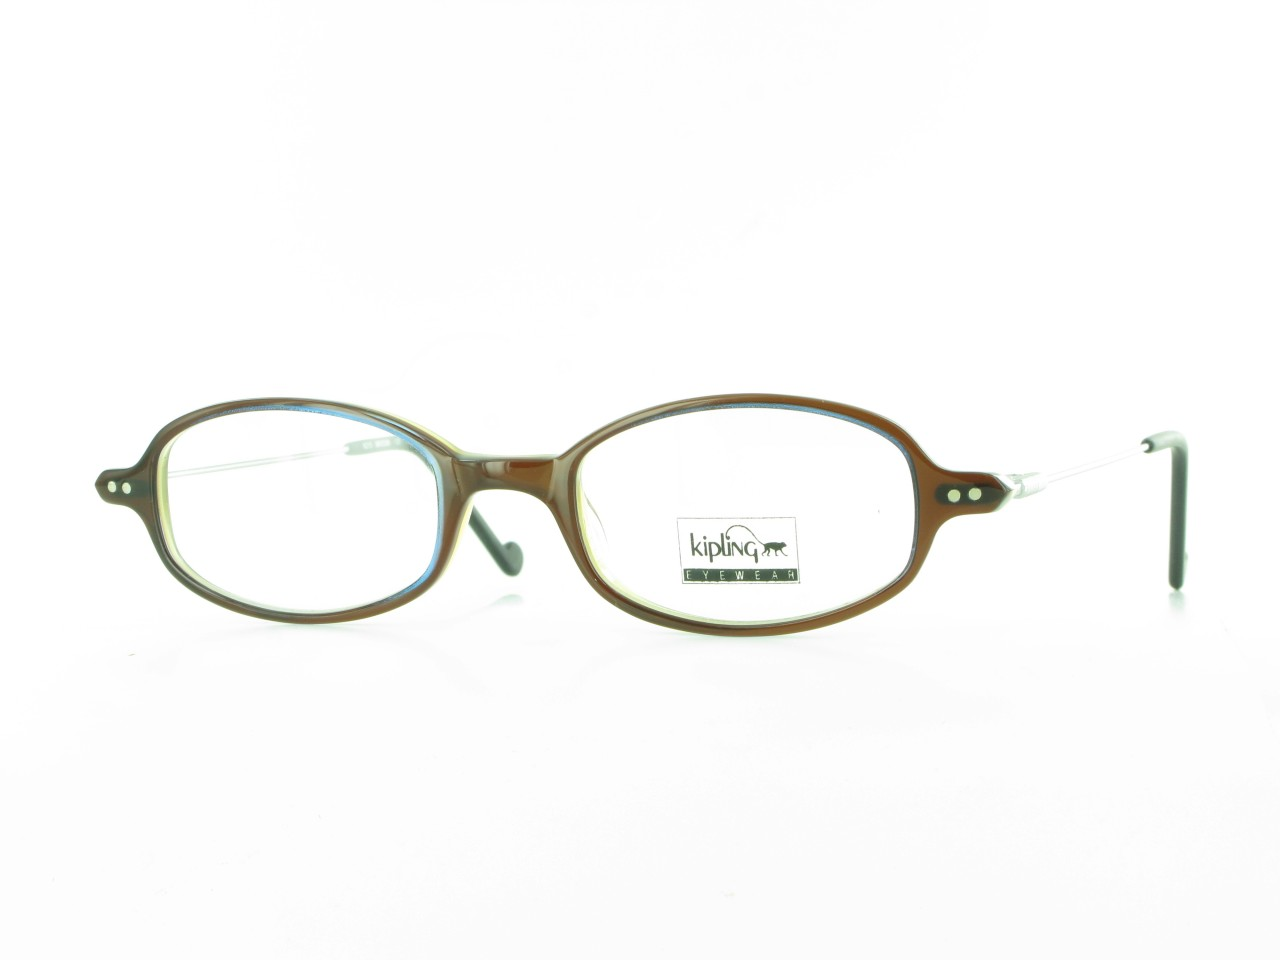 KIPLING Designer EYEGLASS FRAMES Men Women Rectangular ...